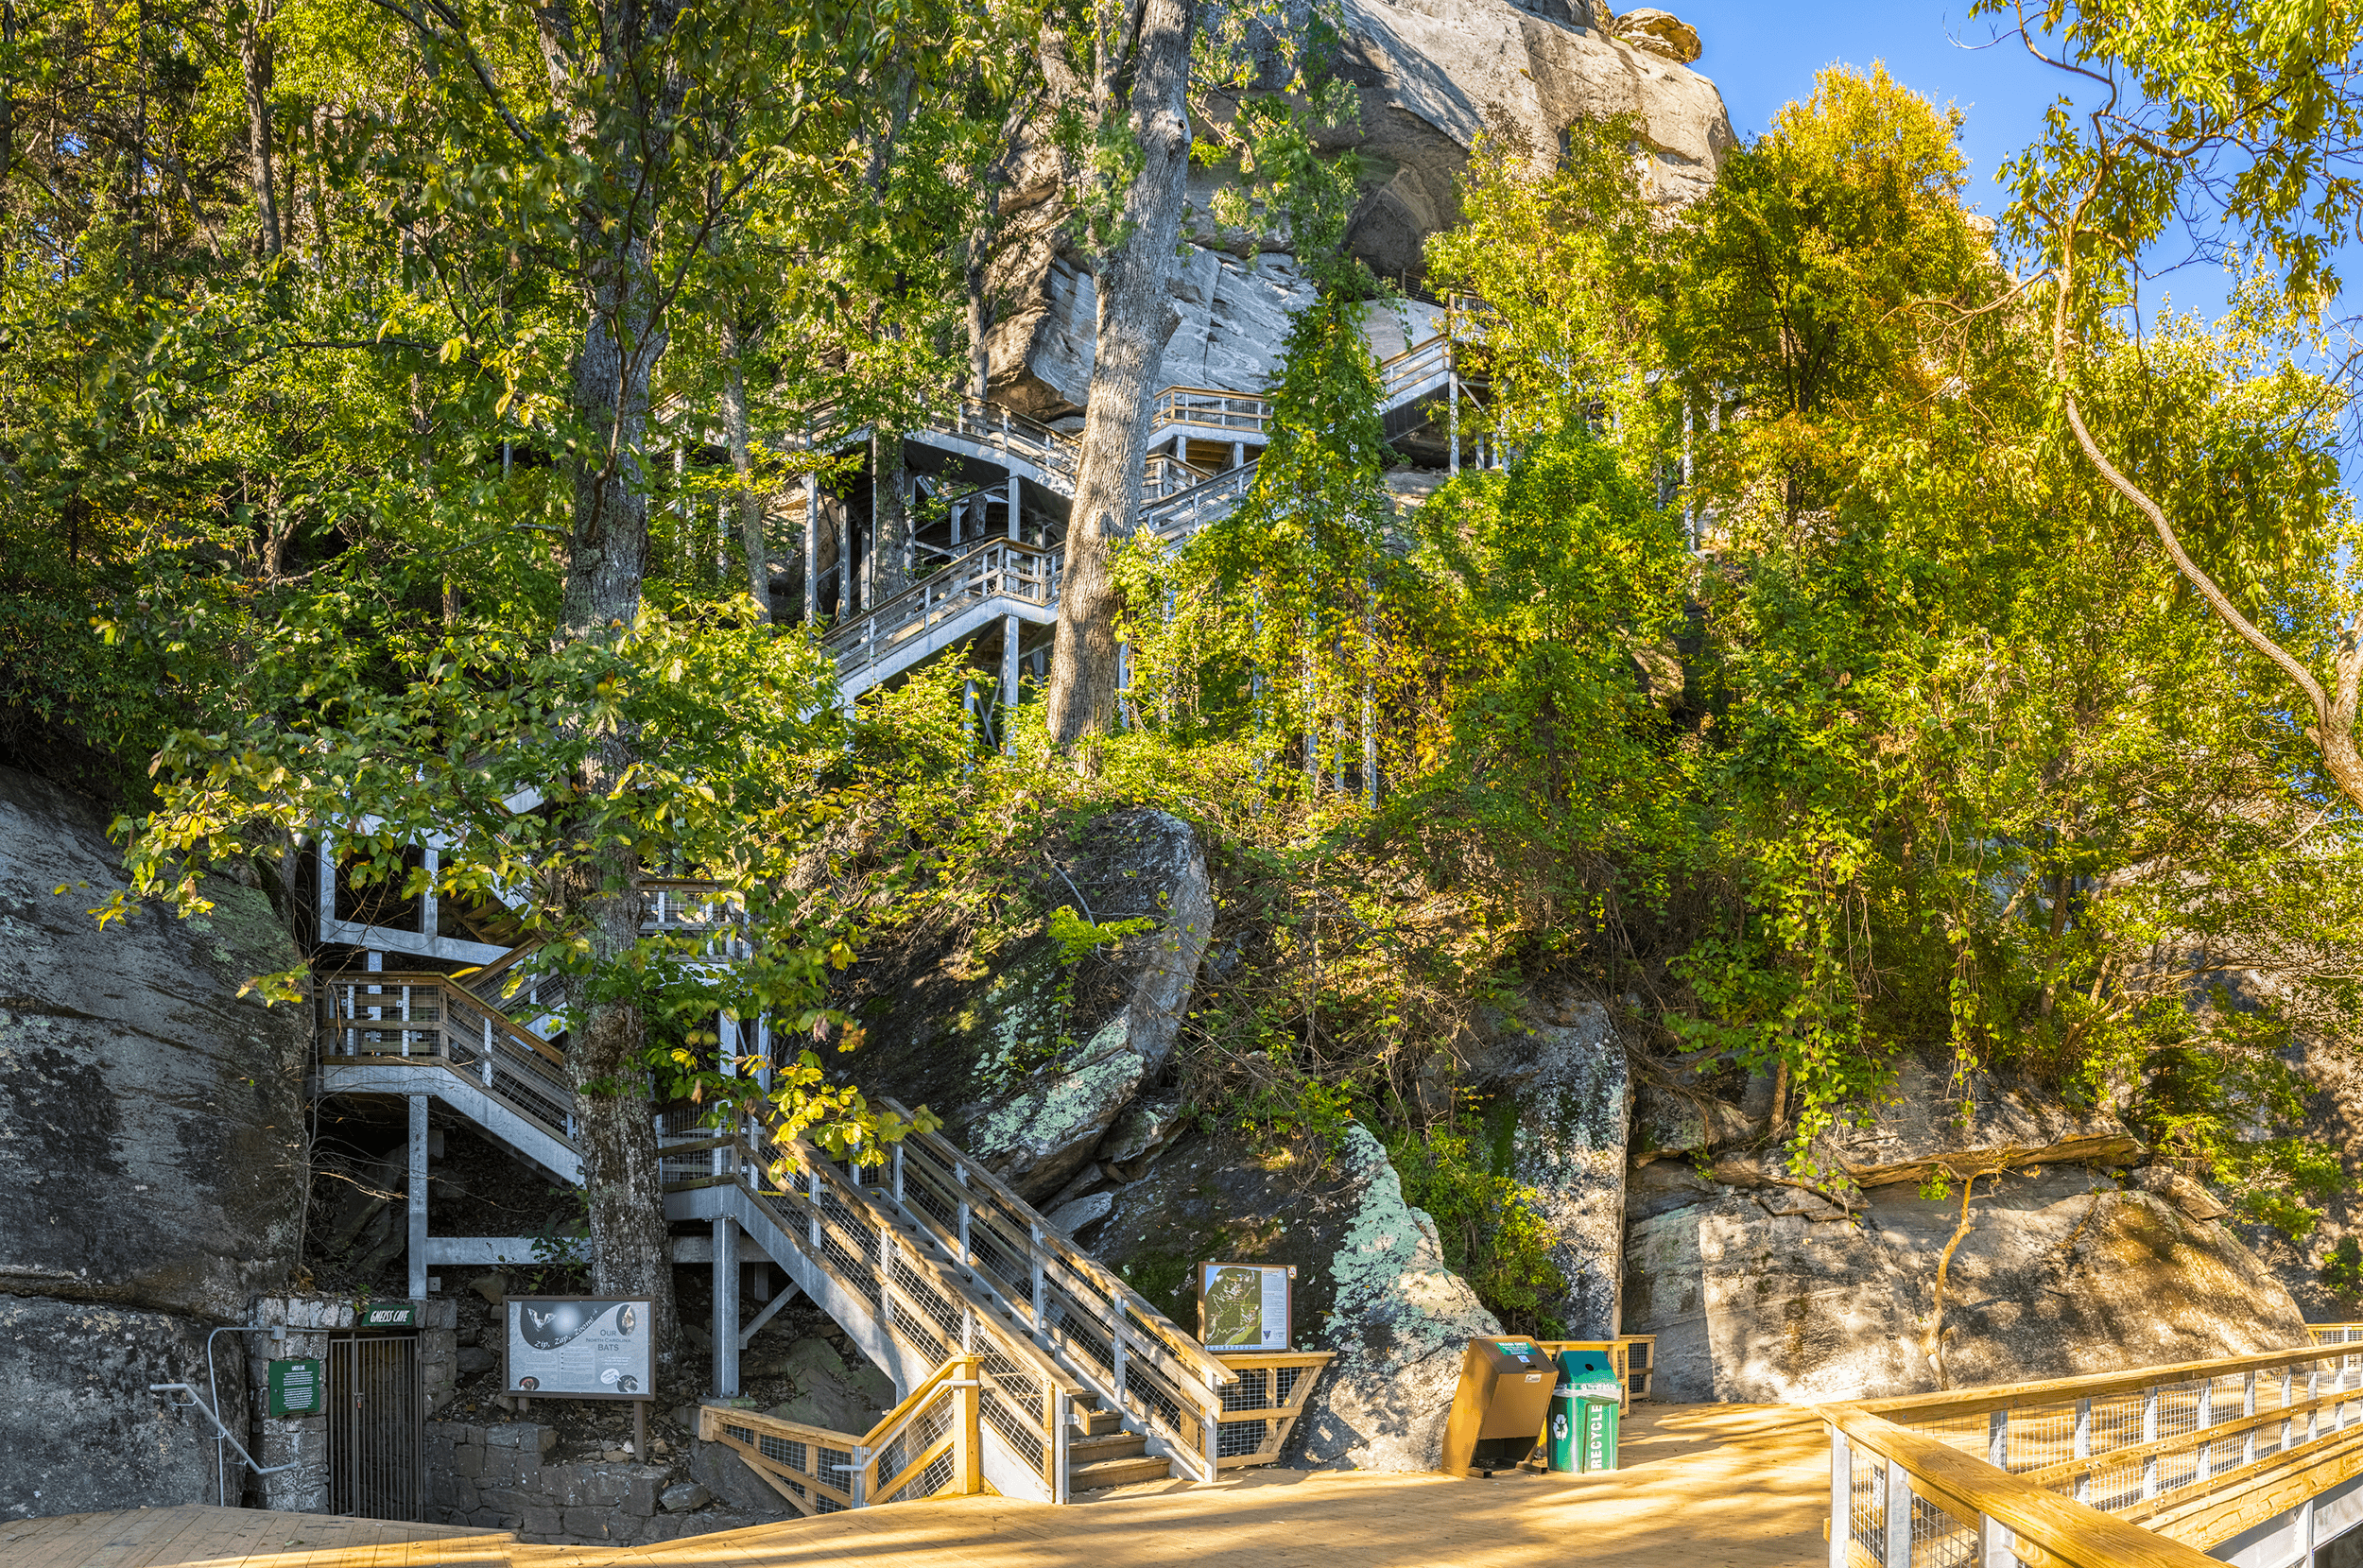 The  Outcroppings Trail  is also nicknamed the  Ultimate Stairmaster  due to its 499 stairs climbing up 26 stories to the top of the Chimney.